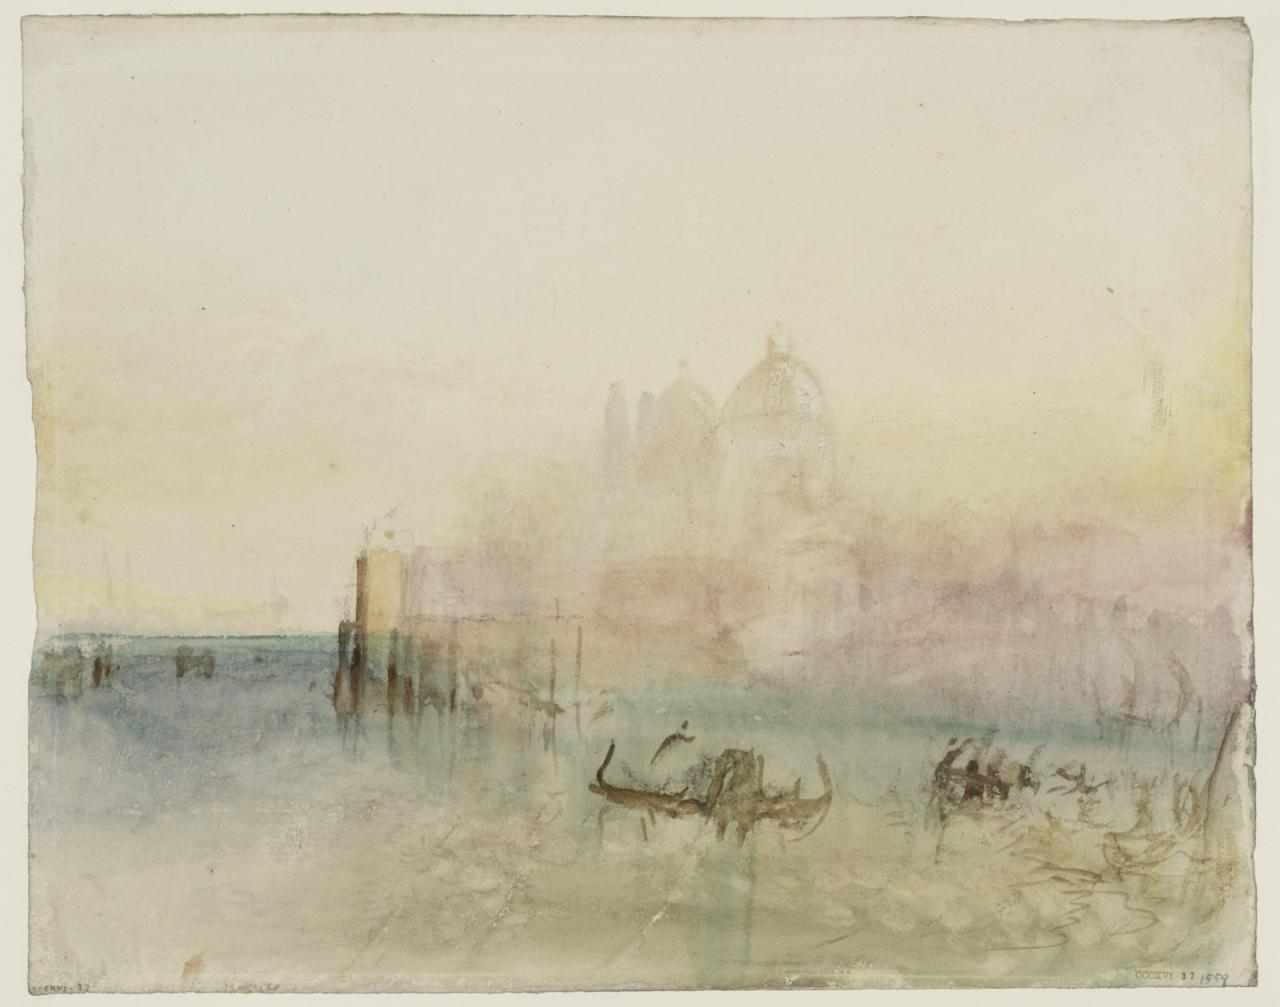 Joseph Mallord William Turner,Venice: Santa Maria della Salute from the Bacino image